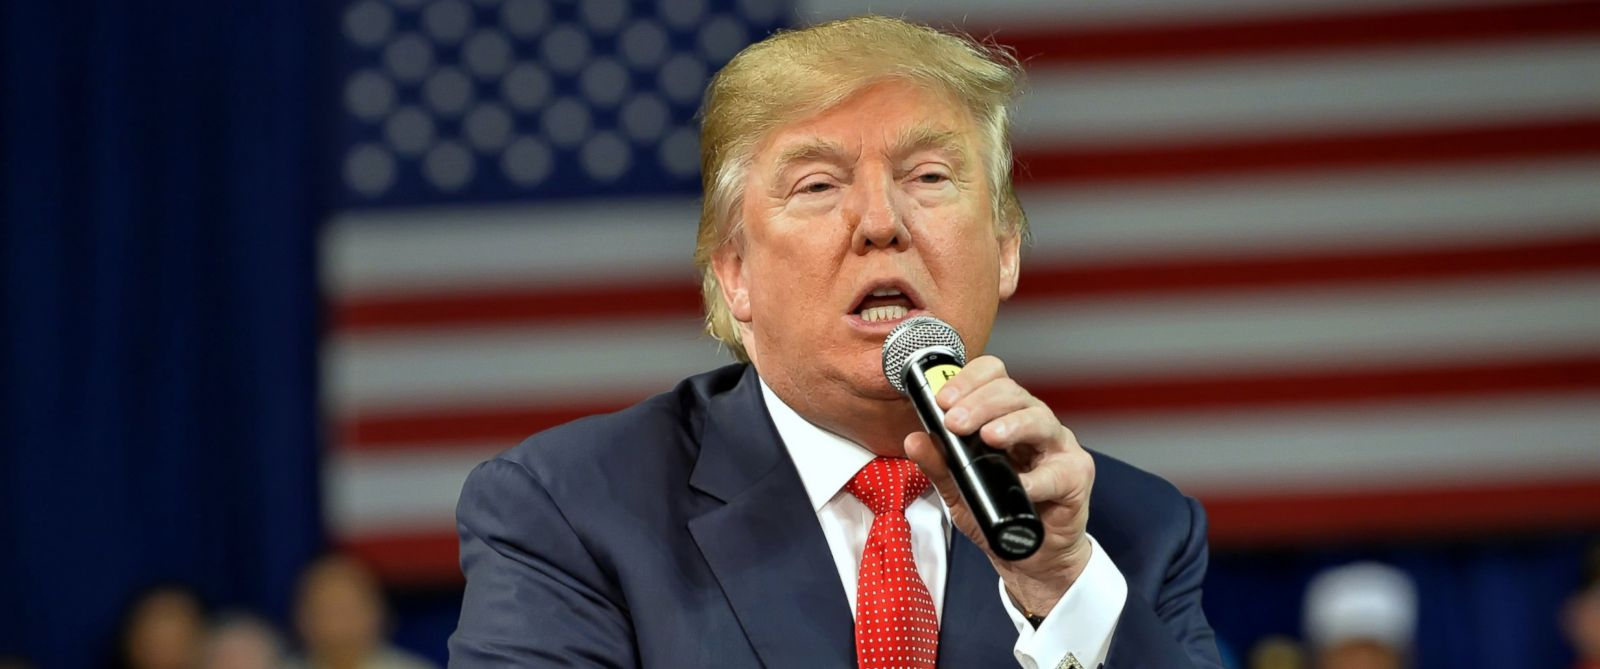 PHOTO: Republican presidential candidate Donald Trump speaks at a town hall meeting in the Convocation Center on the University of South Carolina Aiken campus, Dec. 12, 2015, in Aiken, S.C.